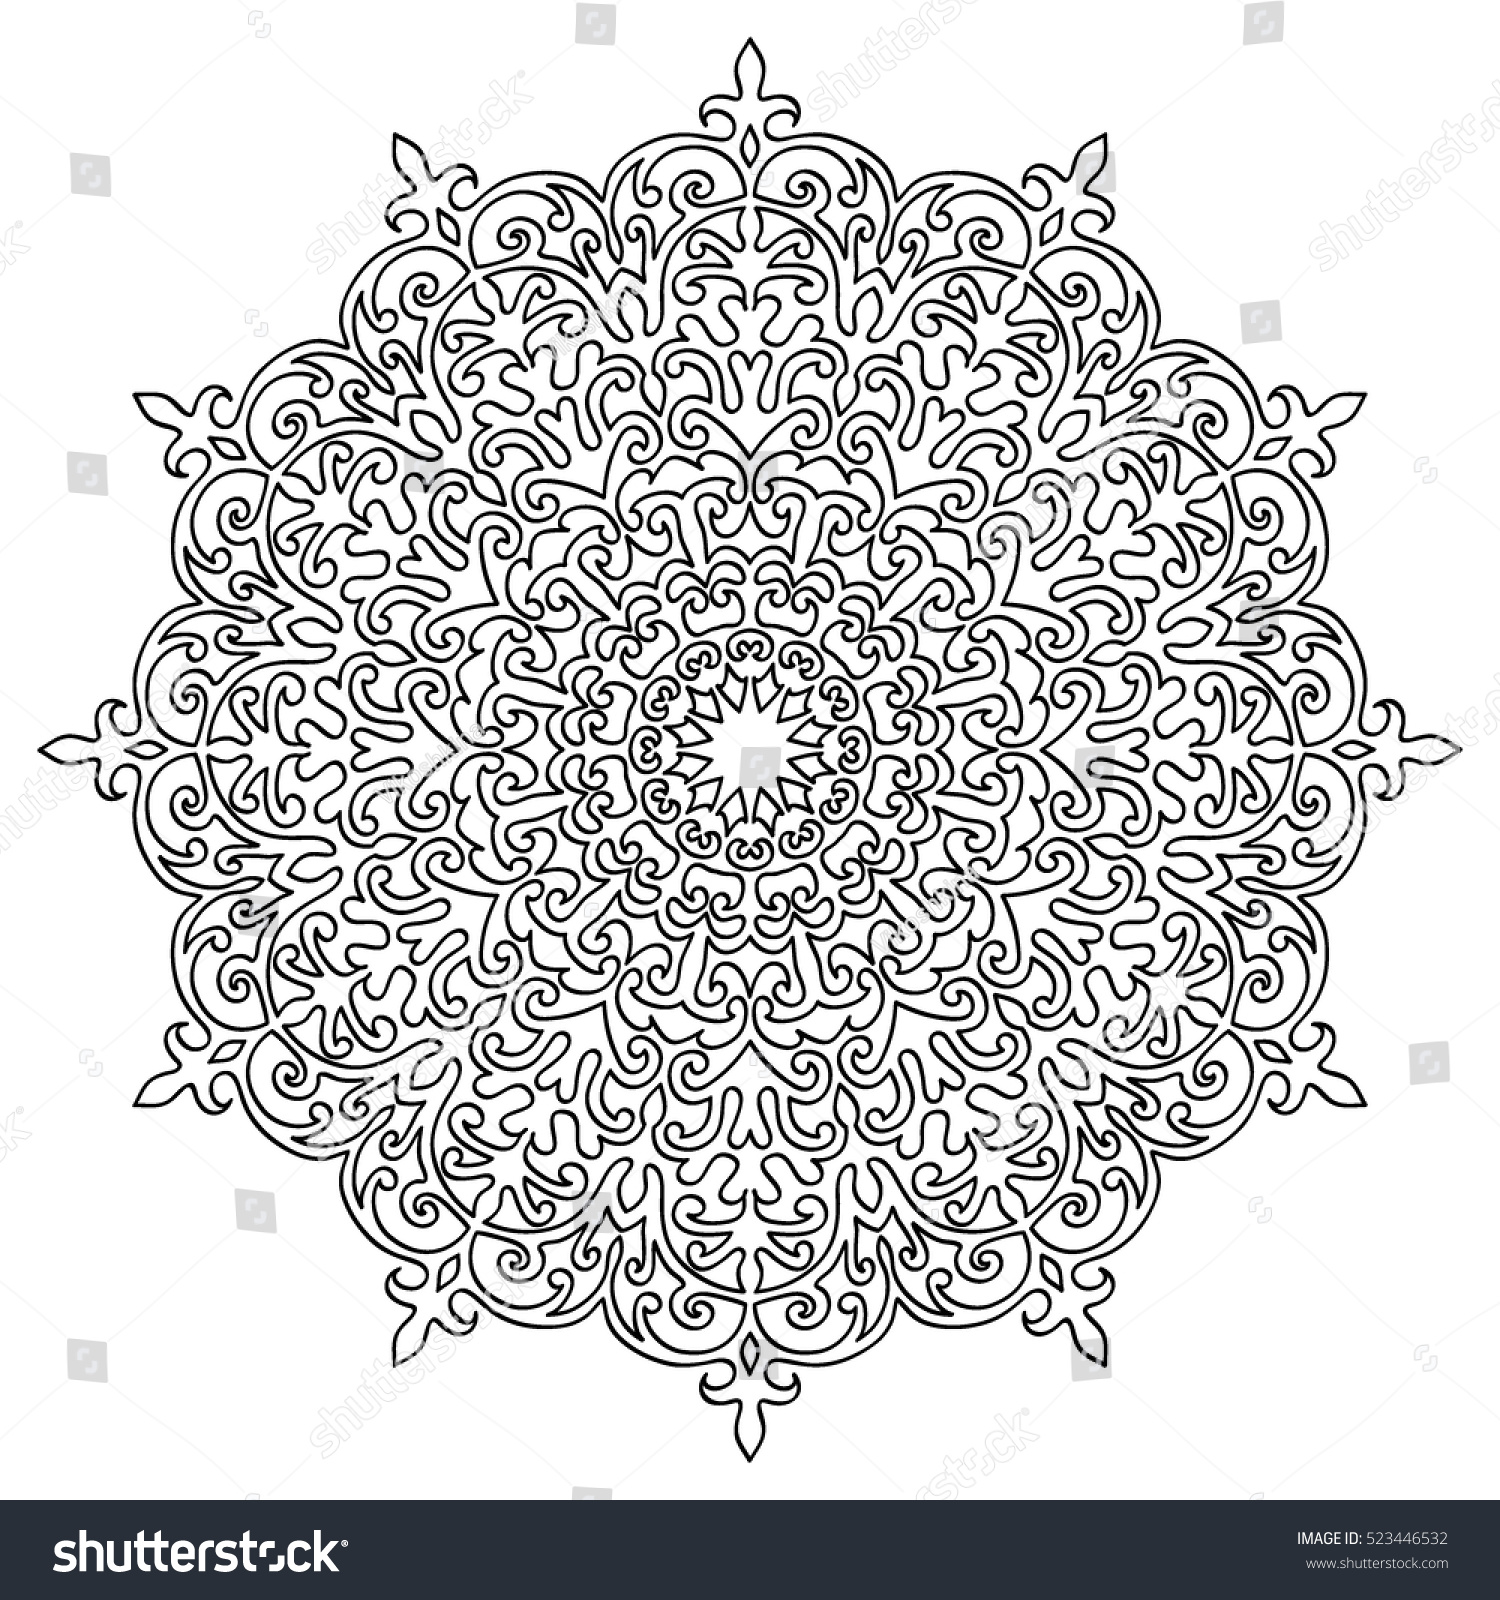 Adult Coloring Book Page Black And White Flourish Round Pattern Floral Mandala Ornament